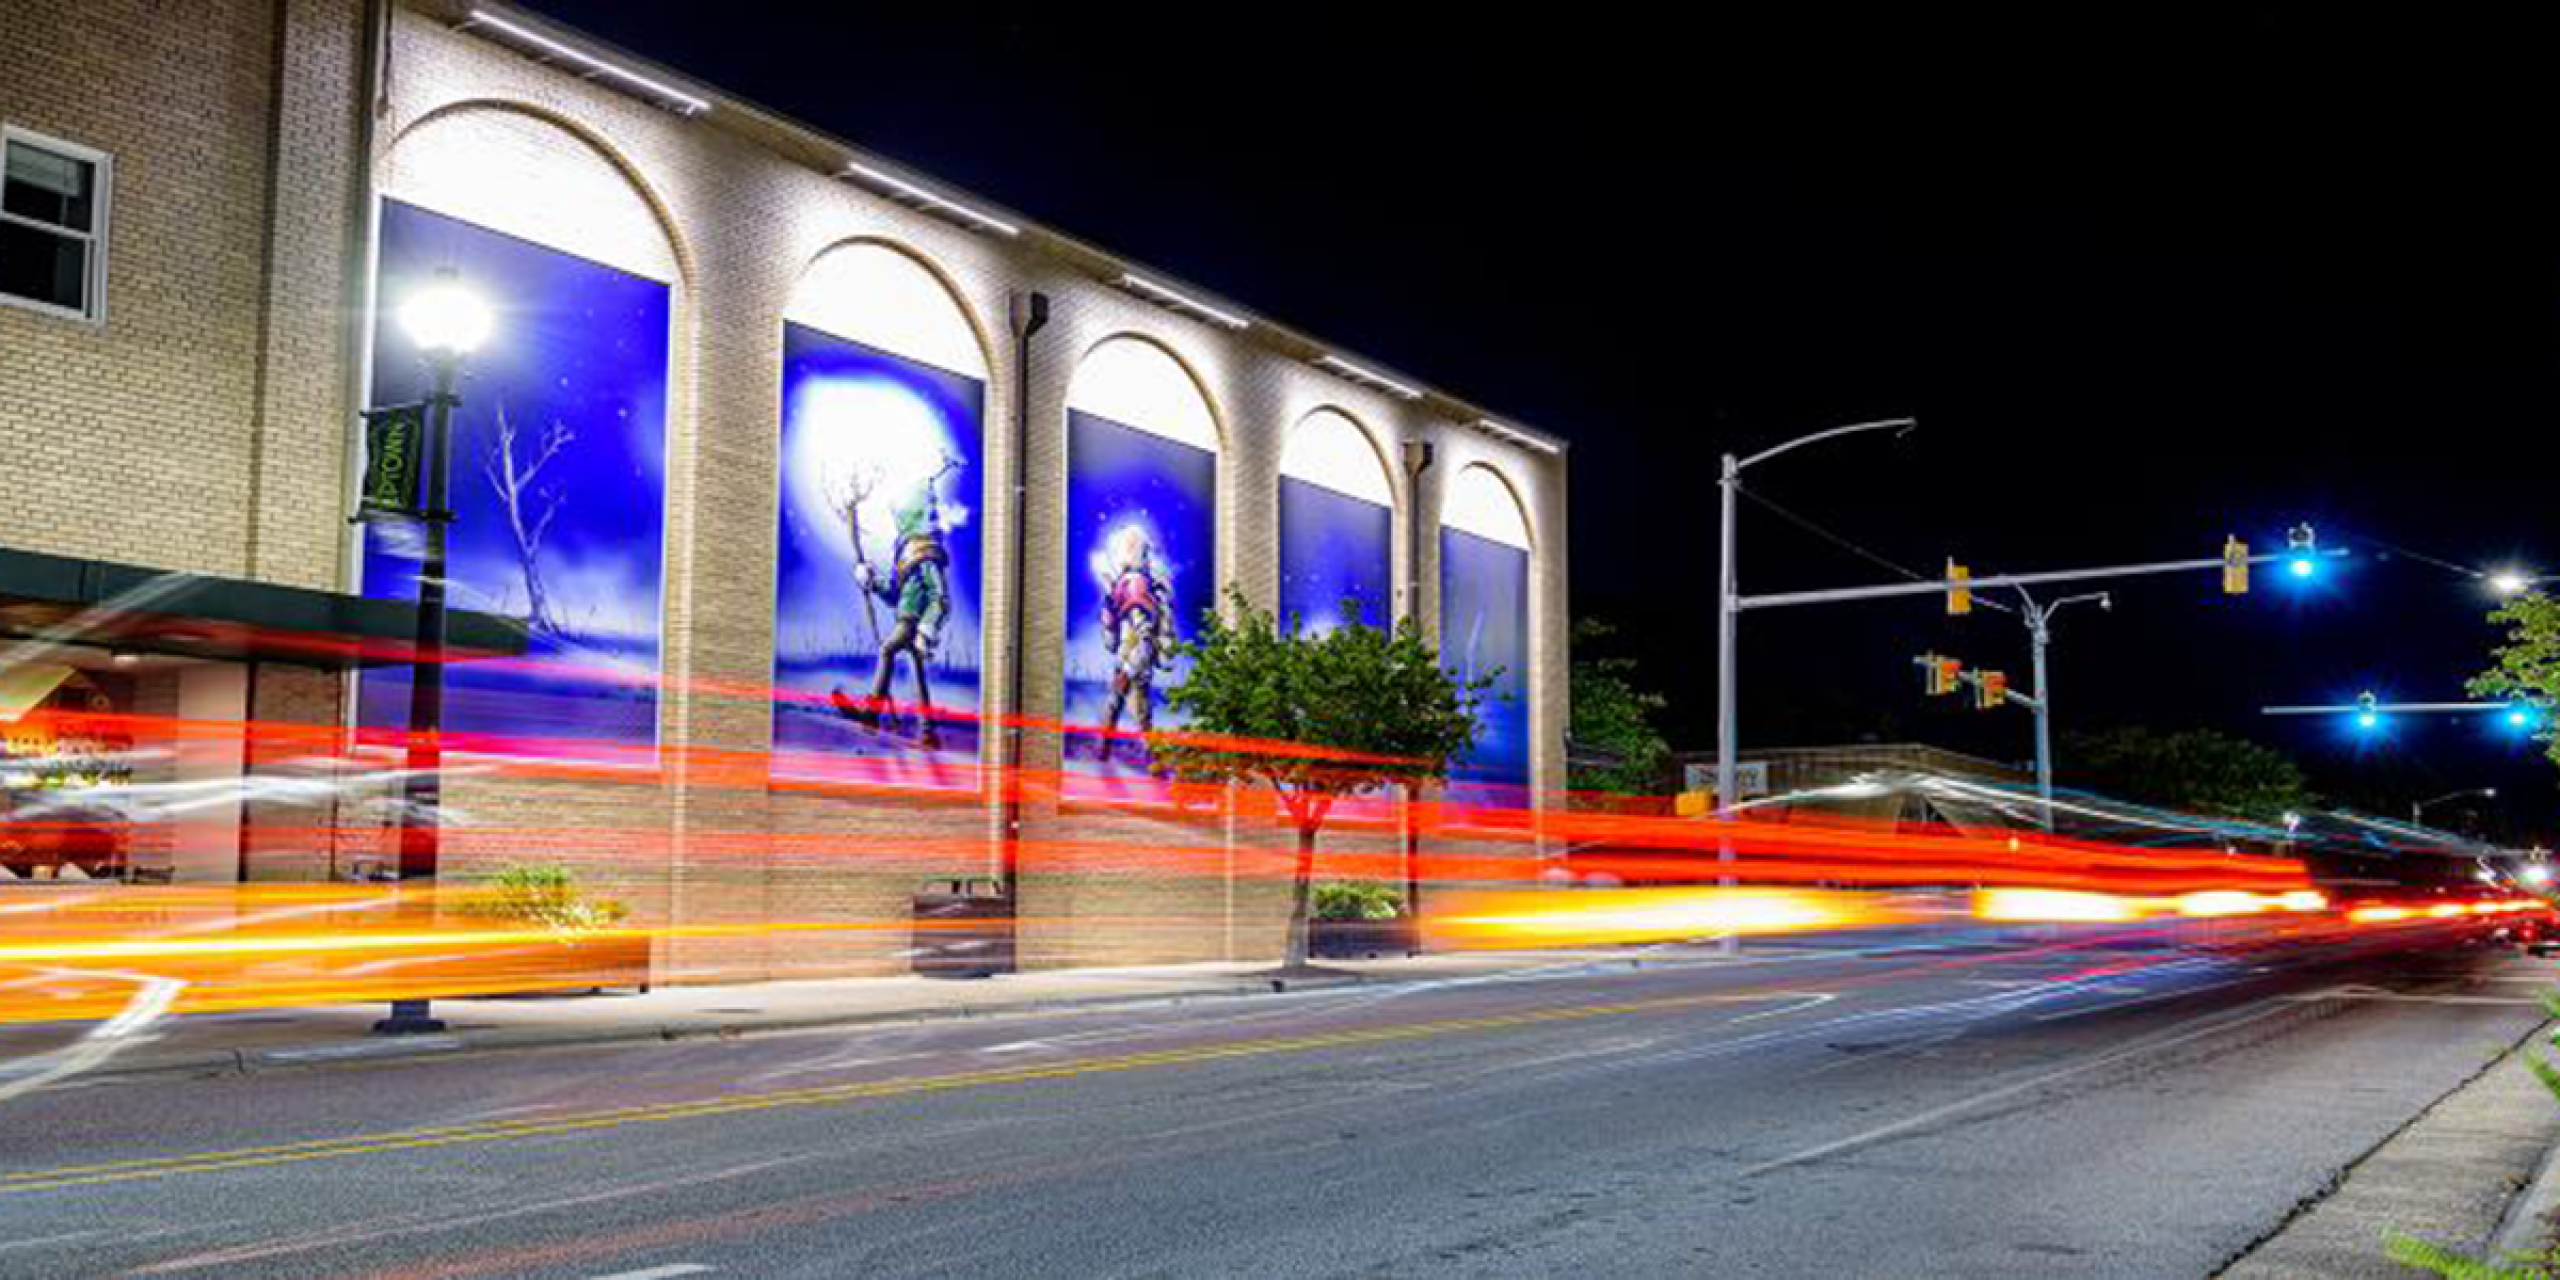 Downtown Greenville. Photo courtesy of the City of Greenville.